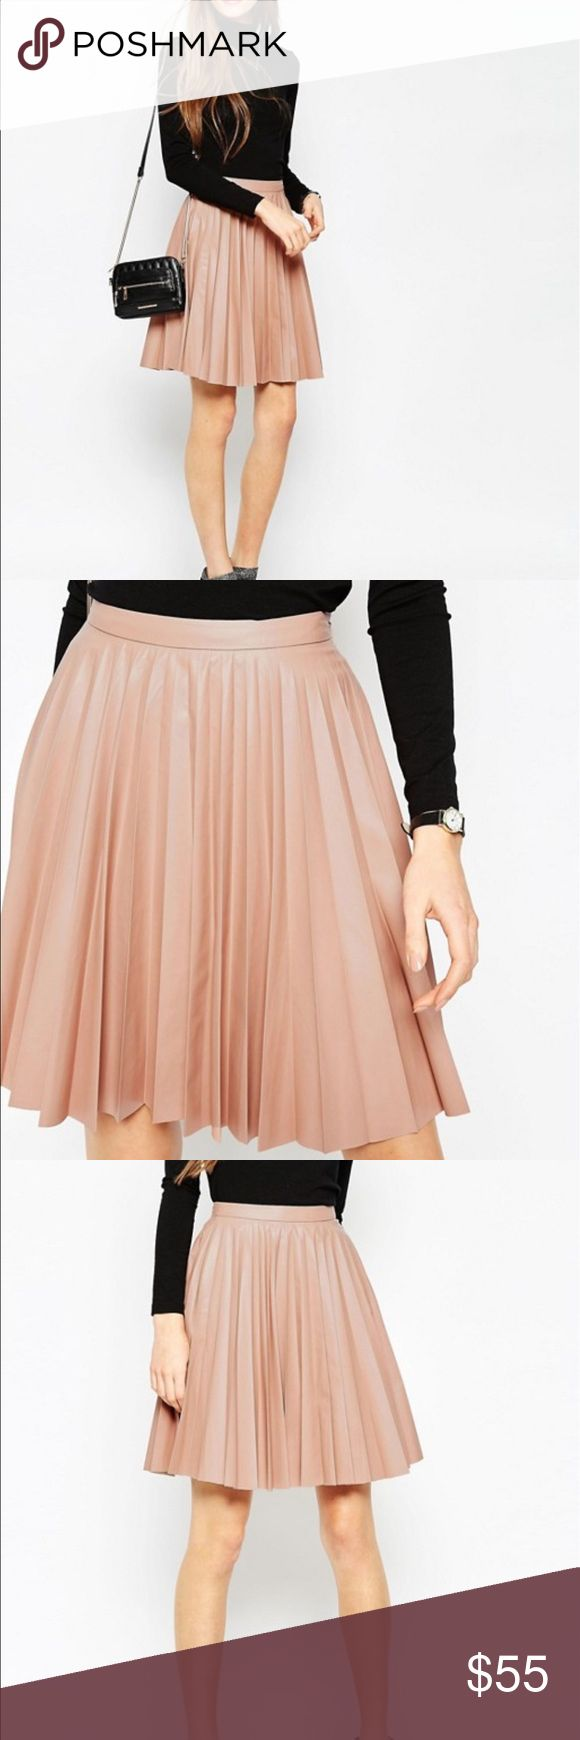 ASOS Leather Look Skirt Pleated leather look skirt in nude, size 10. Perfect for spring! Please see pics for details or message me.   🚫 No Returns  🚫 No Refunds  🚫 No Exchanges  🚫 No Trades please.   💸 Bundle and Save 💸  Happy Shopping! 🛒 ASOS Skirts